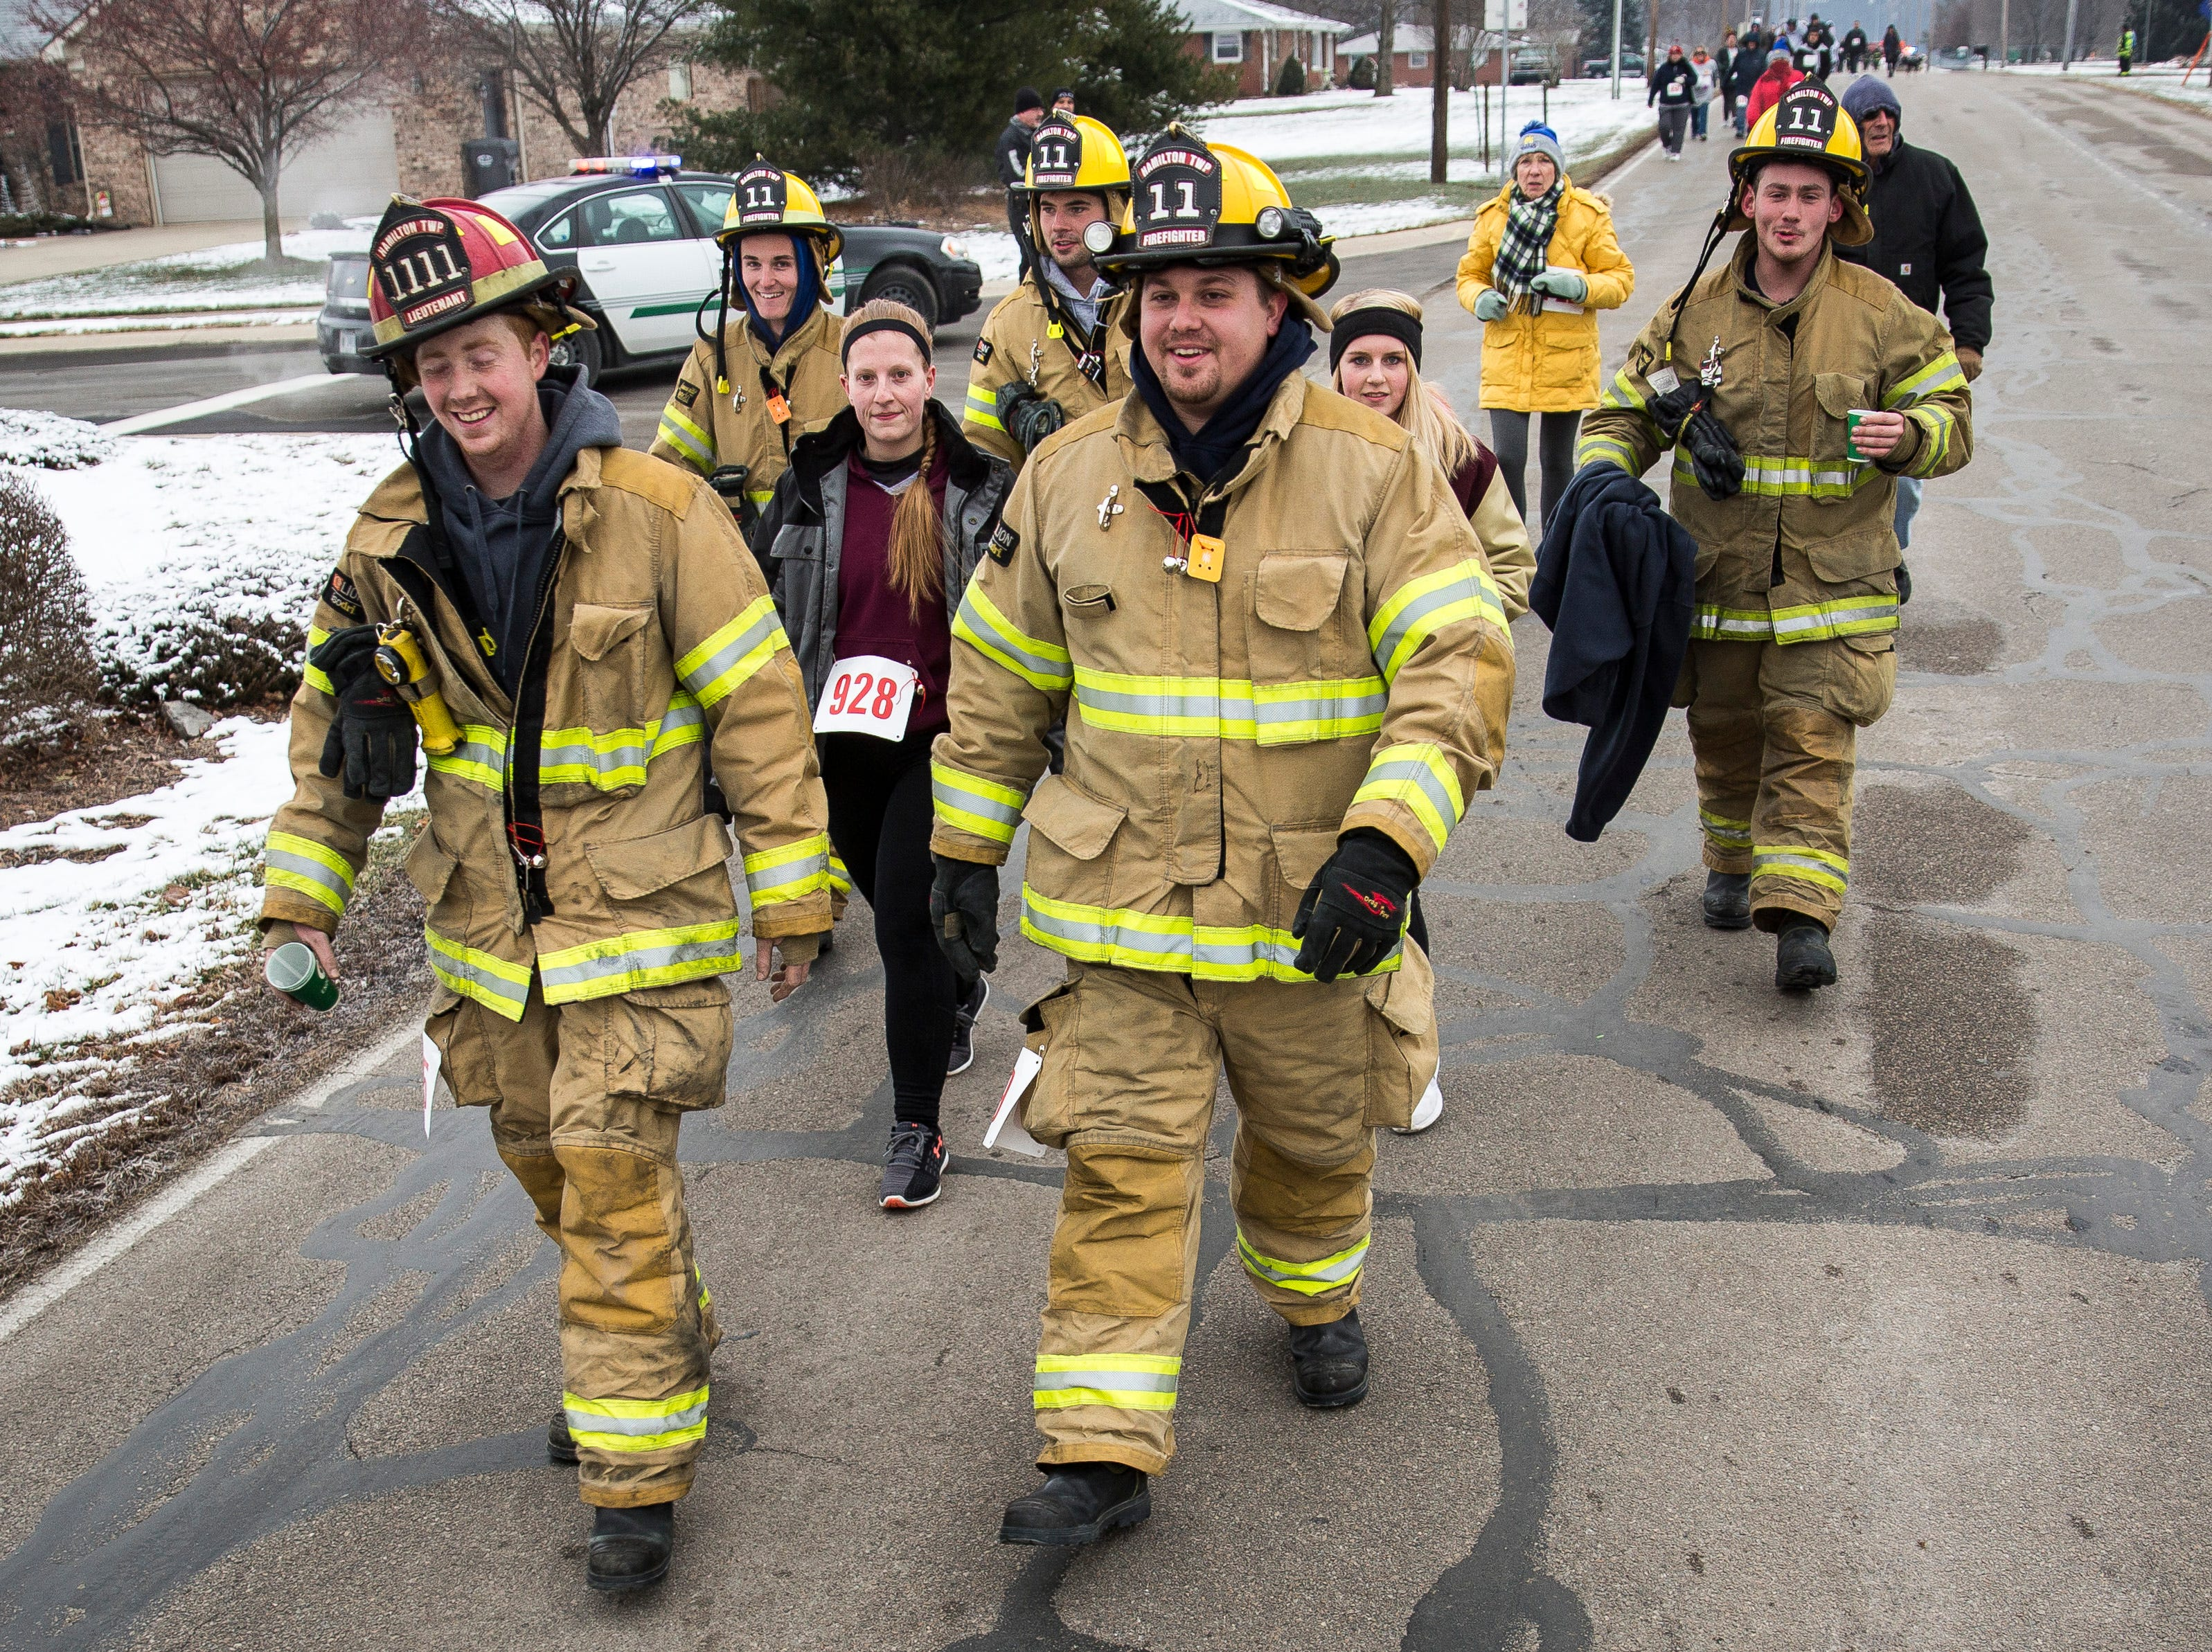 Runners take to the streets in the cold for the Yorktown Volunteer Firefighter's Association third annual Fire and Ice Holiday 5K run and walk on Saturday in downtown Yorktown.